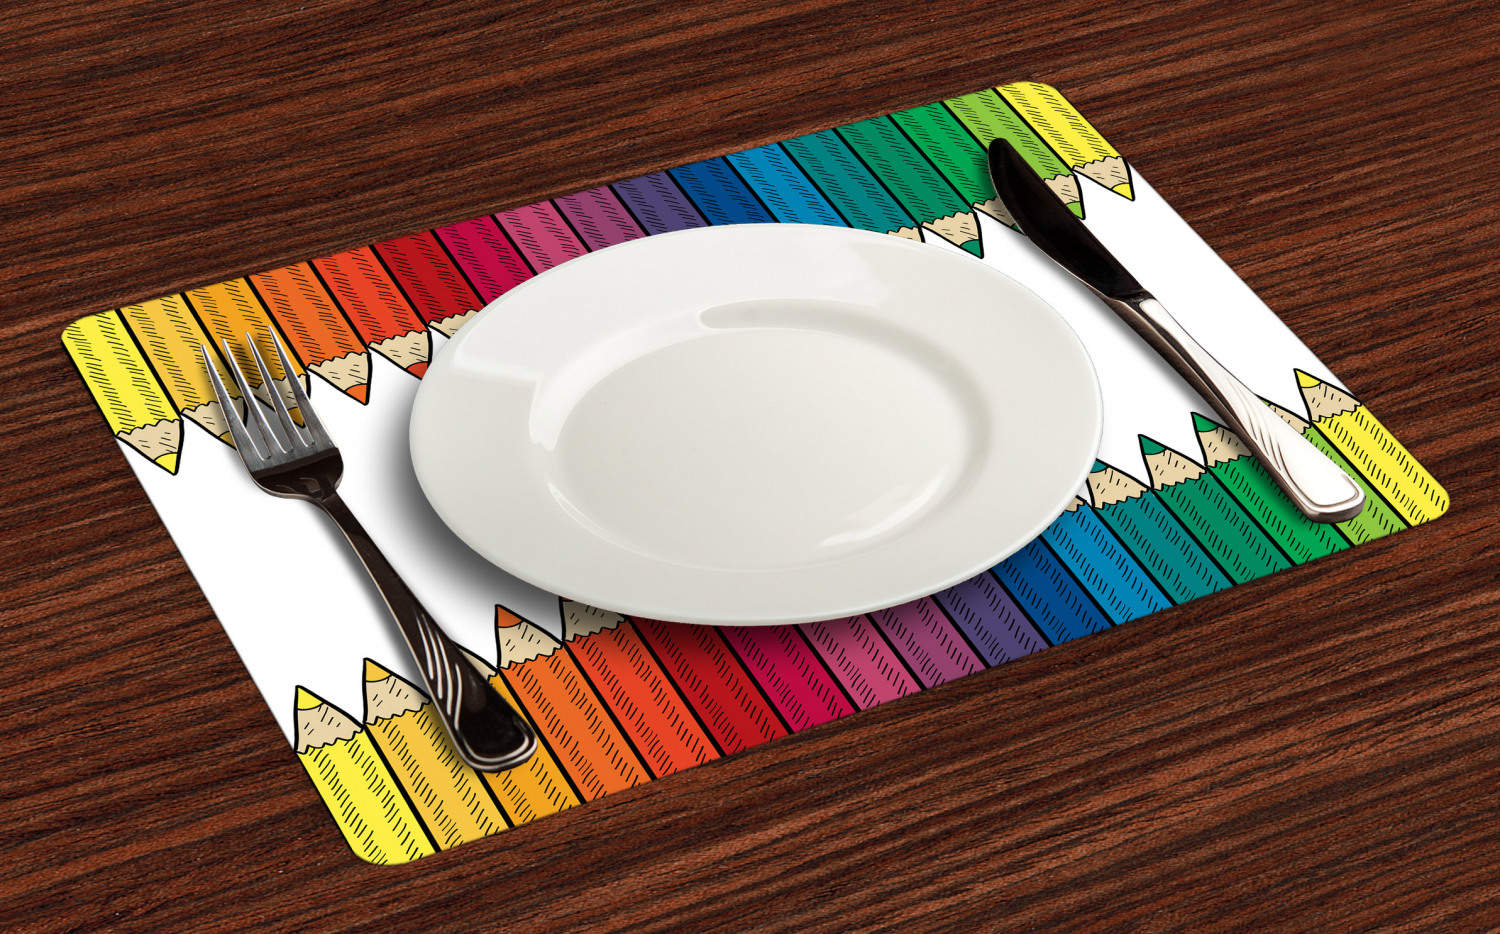 Ambesonne-Fabric-Place-Mats-Set-of-4-Placemats-for-Dining-Room-and-Kitchen-Table thumbnail 29